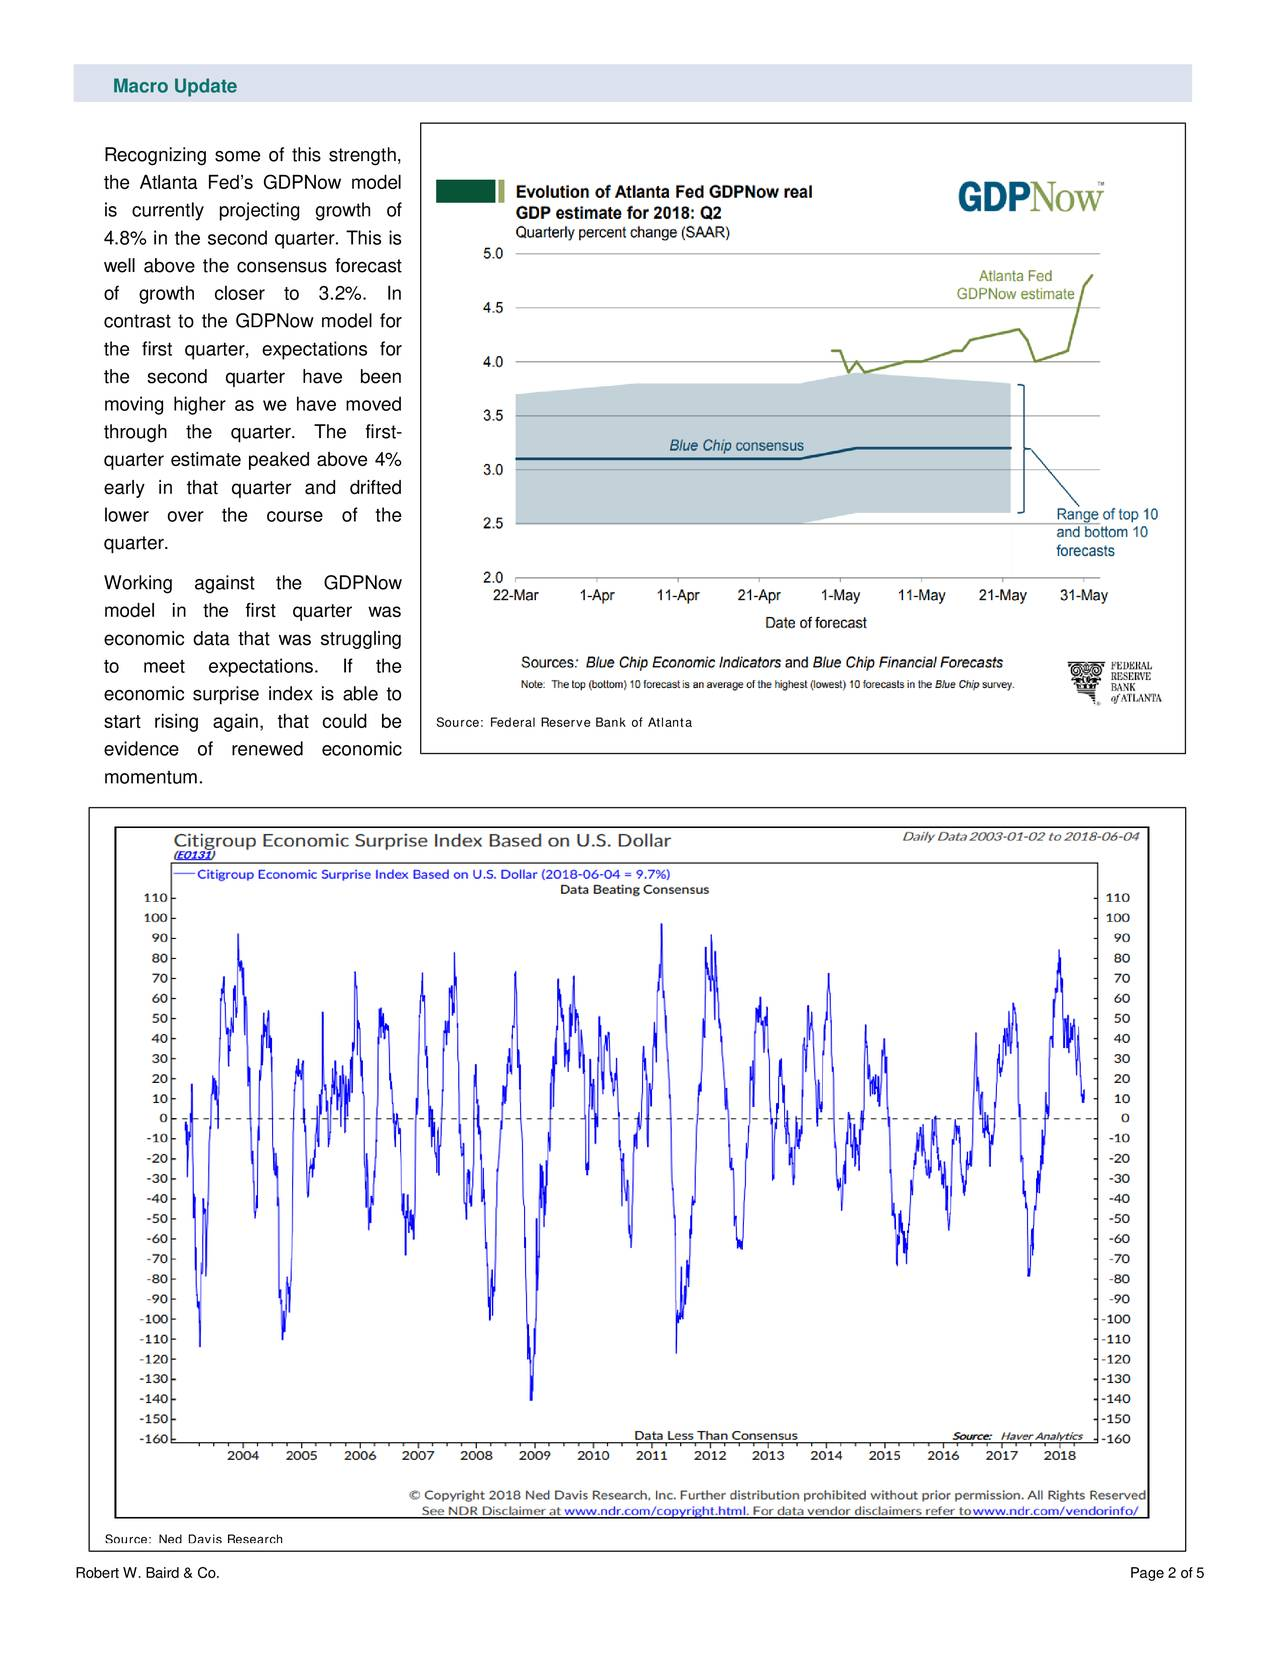 Recognizing some of this strength, the Atlanta Fed's GDPNow model is currently projecting growth of 4.8% in the second quarter. This is well above the consensus forecast of growth closer to 3.2%. In contrast to the GDPNow model for the first quarter, expectations for the second quarter have been moving higher as we have moved through the quarter. The fir st- quarter estimate peaked above 4% early in that quarter and drifted lower over the course of the quarter. Working against the GDPNow model in the first quarter was economic data that was struggli ng to meet expectations. If the economic surprise index is able to start rising again, that could be Source: Federal Reserve Bank of Atlanta evidence of renewed economic momentum. Source: Ned Davis Research Robert W. Baird & Co. Page 2 of 5